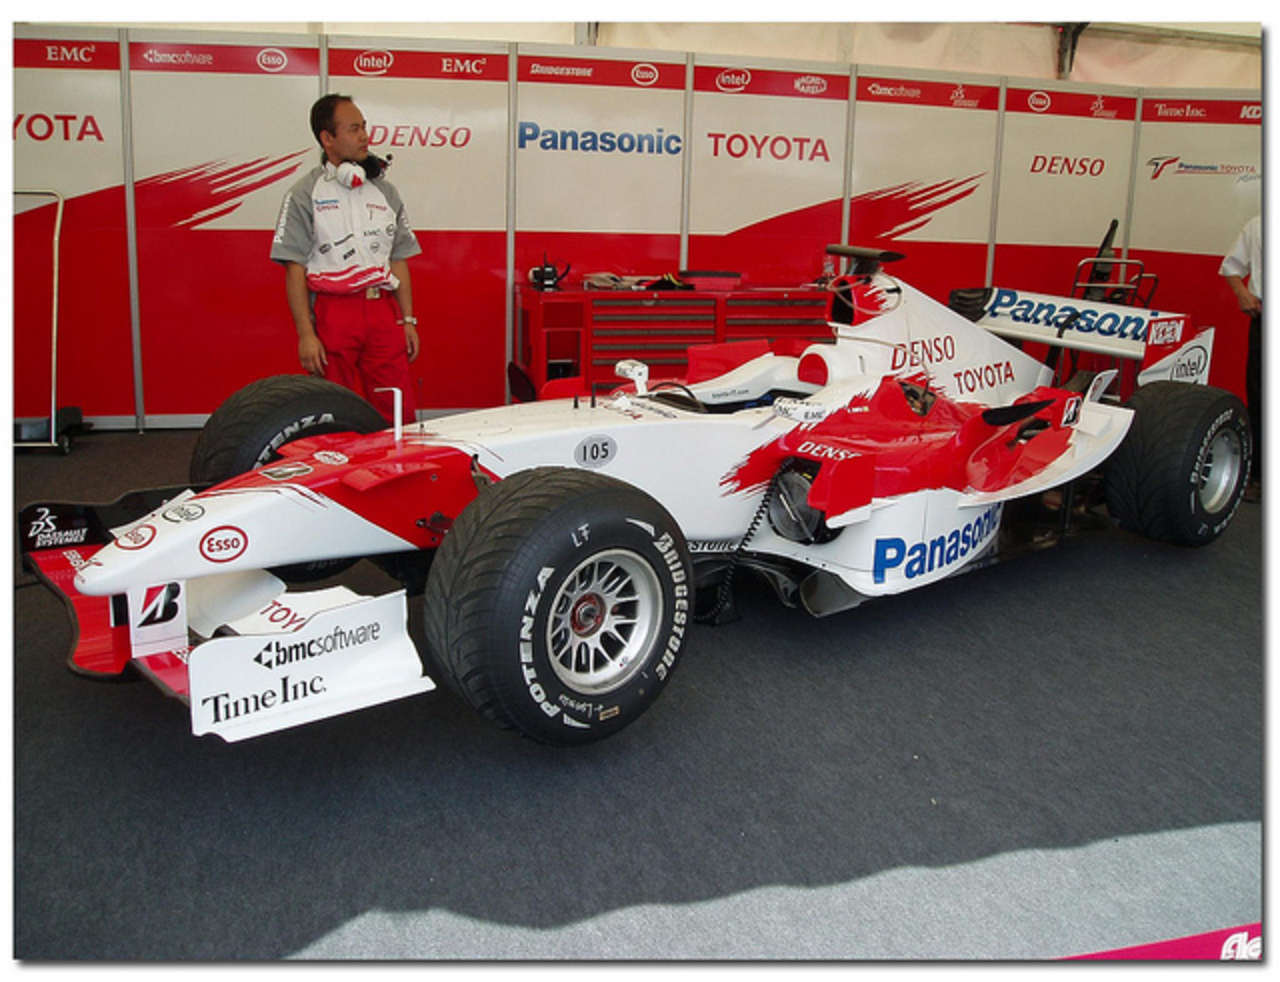 2005 Toyota TF105 F1. Goodwood Festival of Speed 2006. 2005 Toyota TF105 F1.